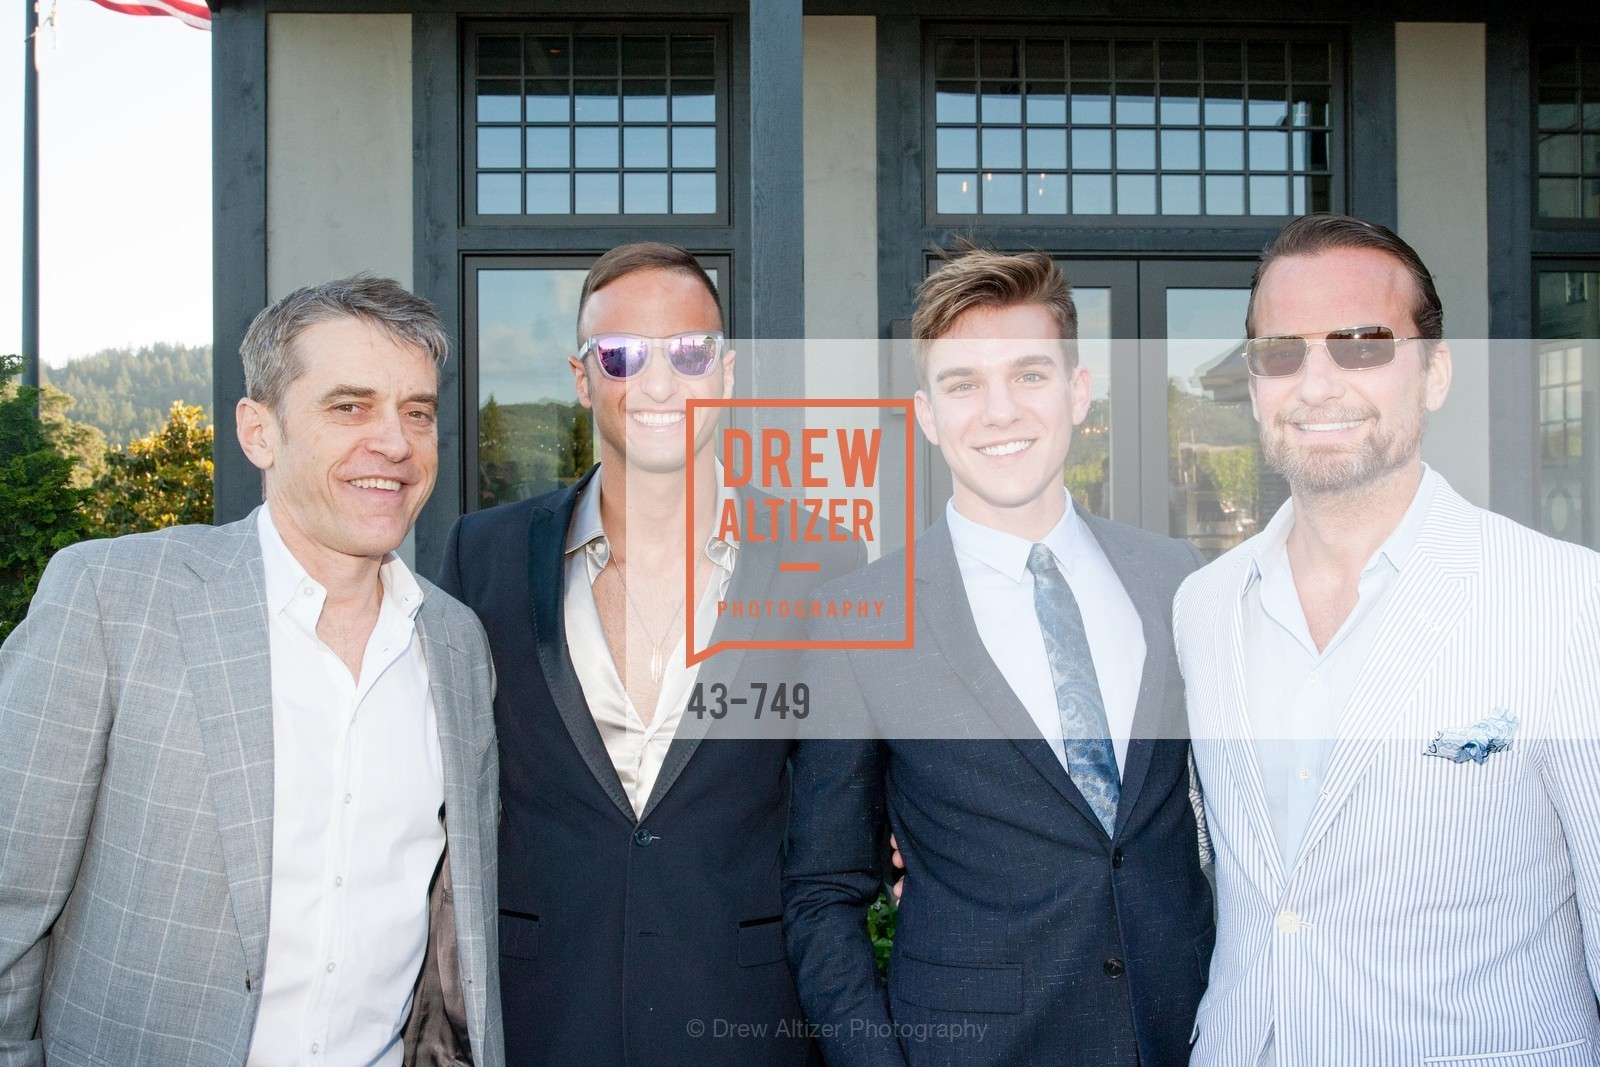 Ken Smith, Ari Kofayan, Joe Adkins, Rick Mordesovich, PETER COPPING Meets and Greets OSCAR DELA RENTA Clients and Associates at NEIMAN MARCUS, US, May 23rd, 2015,Drew Altizer, Drew Altizer Photography, full-service agency, private events, San Francisco photographer, photographer california